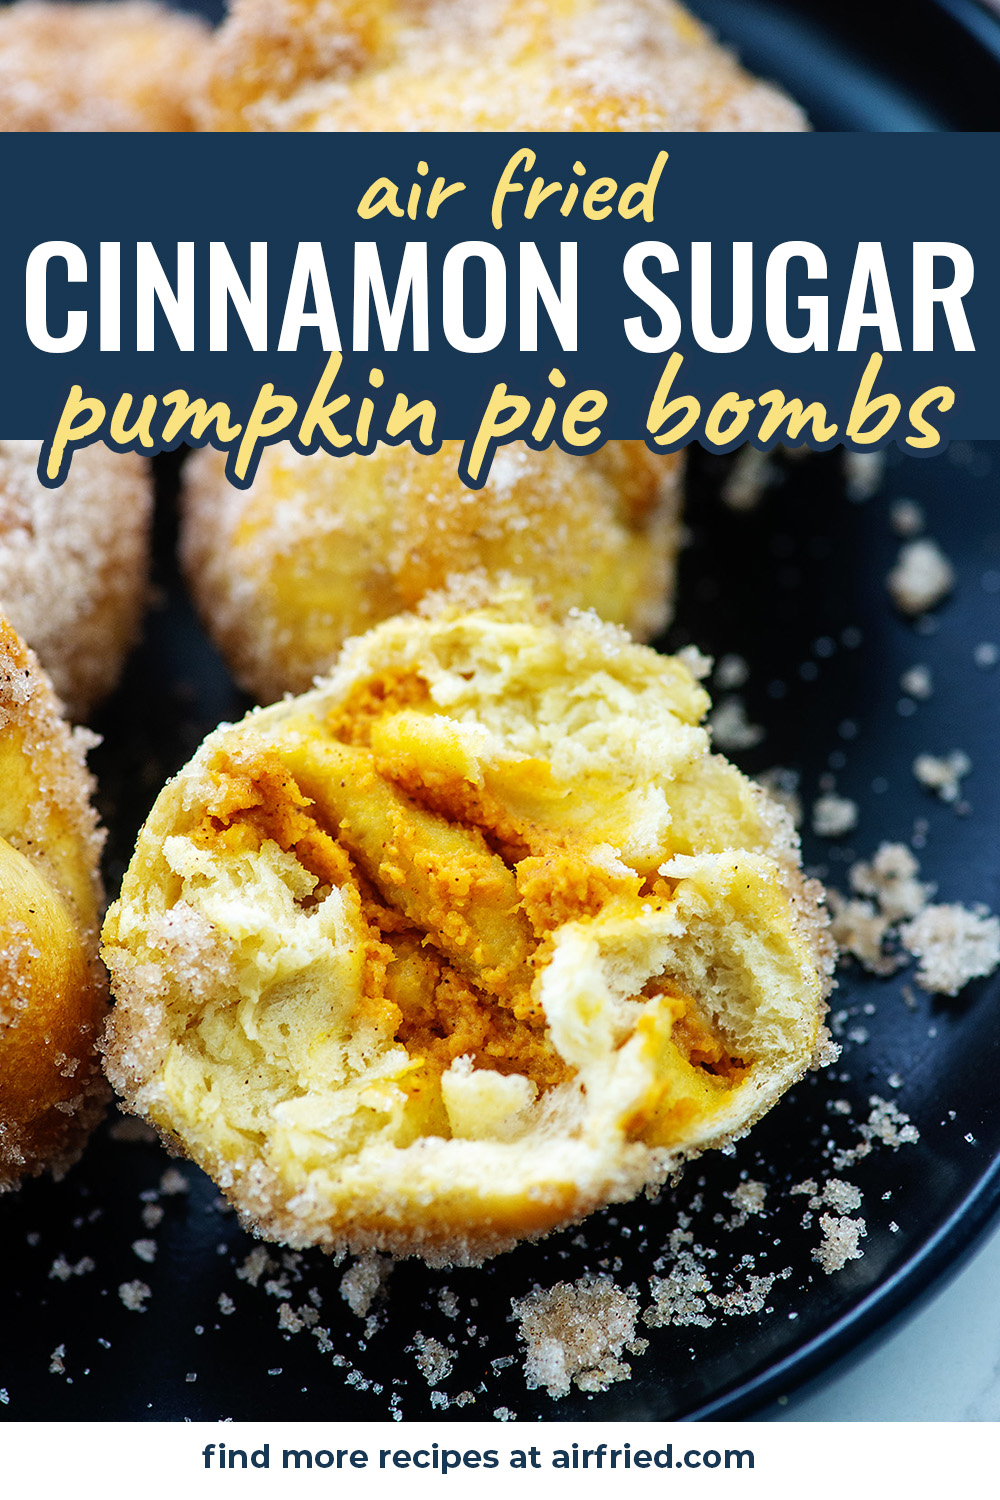 Cinnamon sugar donuts filled with pumpkin pie! These donut bombs are made in the air fryer and they turn out perfect every time. #airfryer #pumpkin #donuts